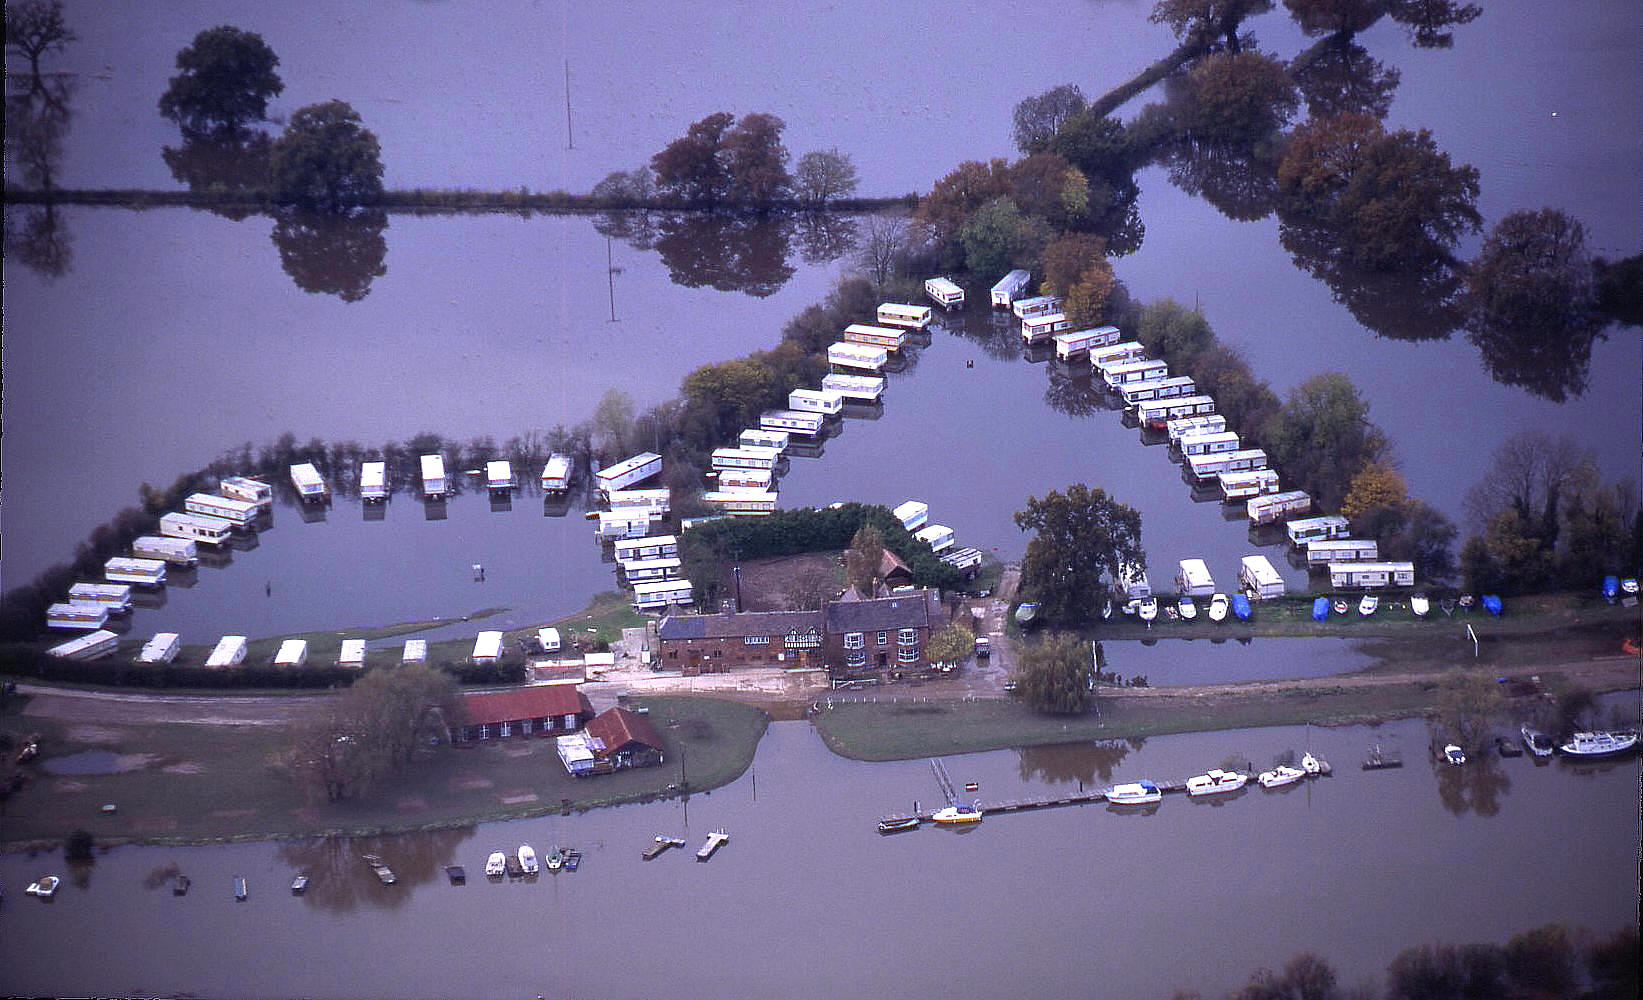 A mobile-home park, during the 1998 floods in the river Severn